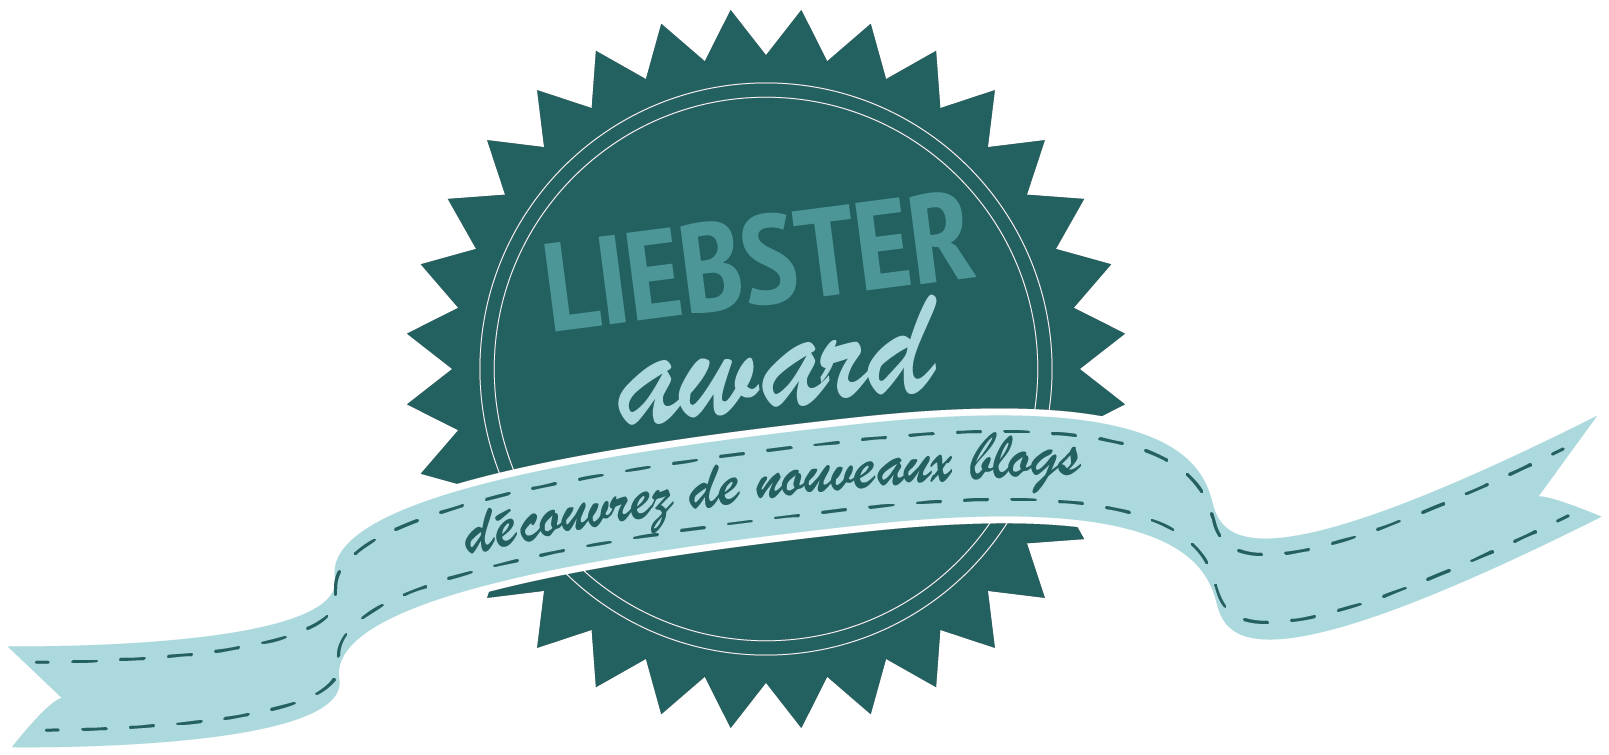 Ma nomination aux Liebster Awards !